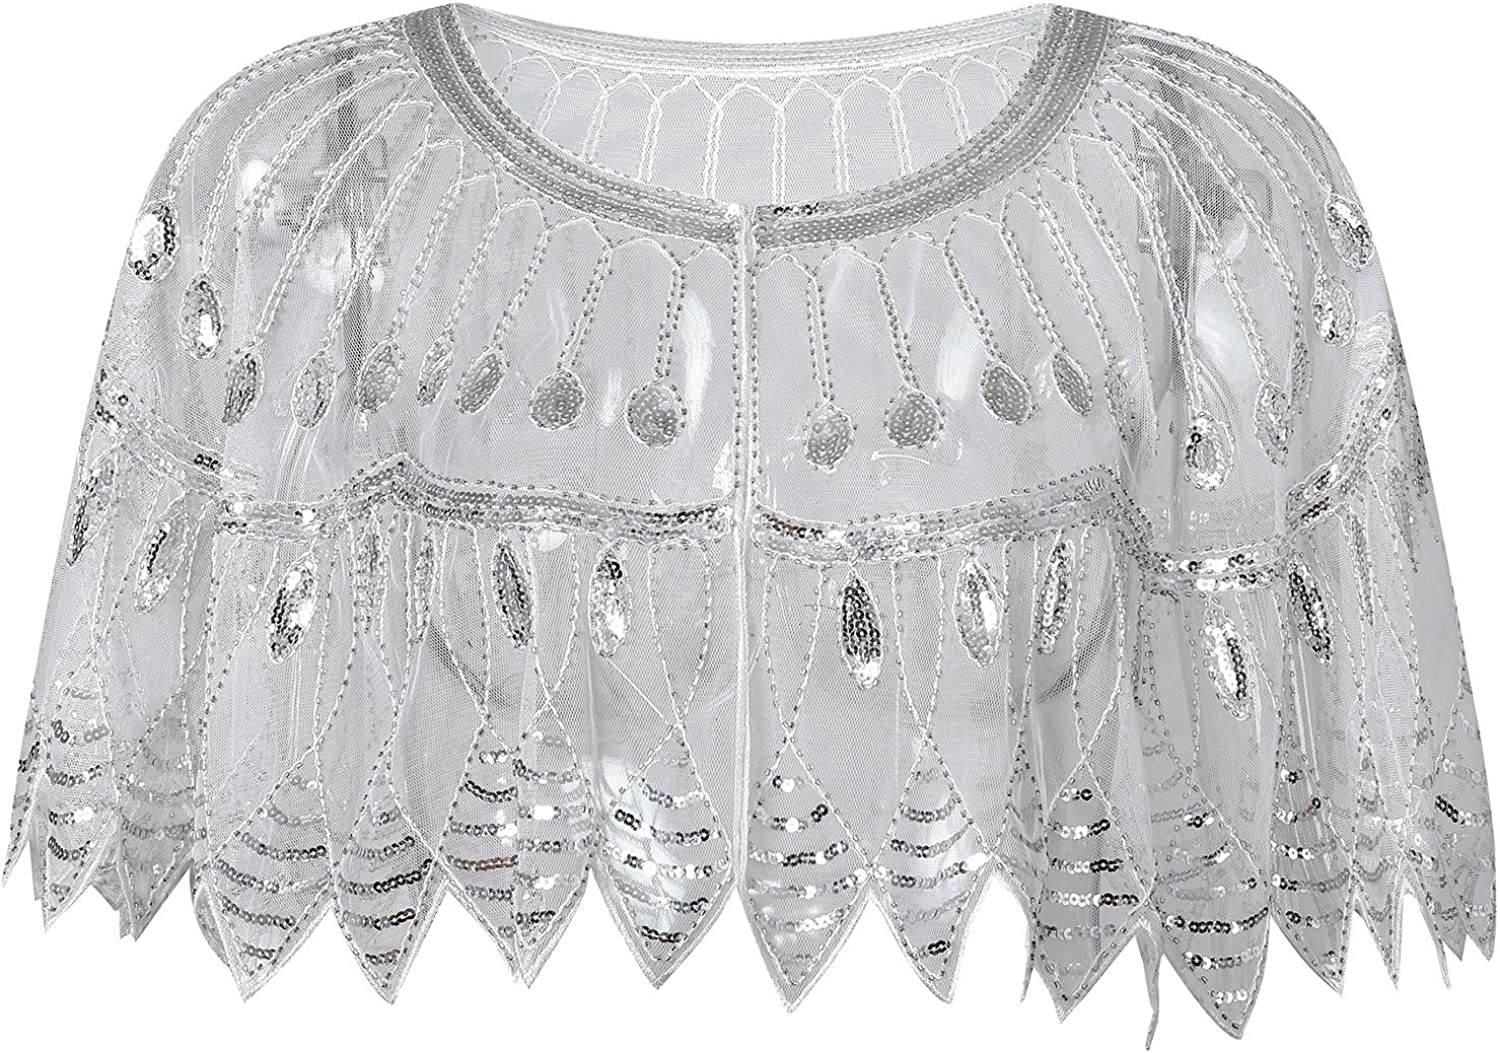 Whitewed Embroidered Gatsby Evening Party Shoulder Arm Cover Wrap Shawl Sheer